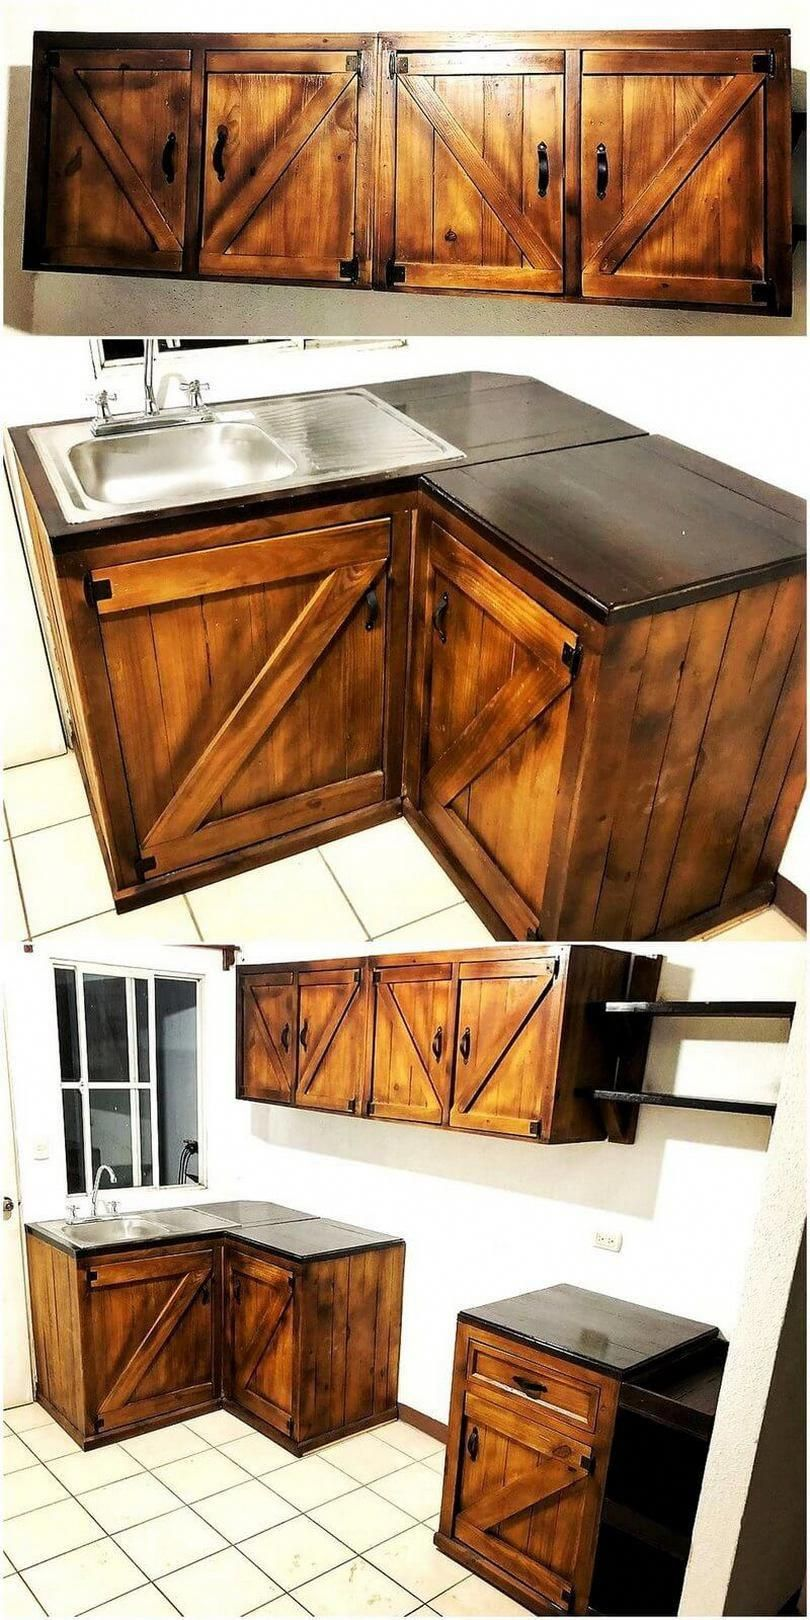 Be Creative And Design Your Own Rustic Furniture For Your Kitchen This Beautiful Designed Kit Rustic Furniture Design Rustic Furniture Wooden Pallet Furniture